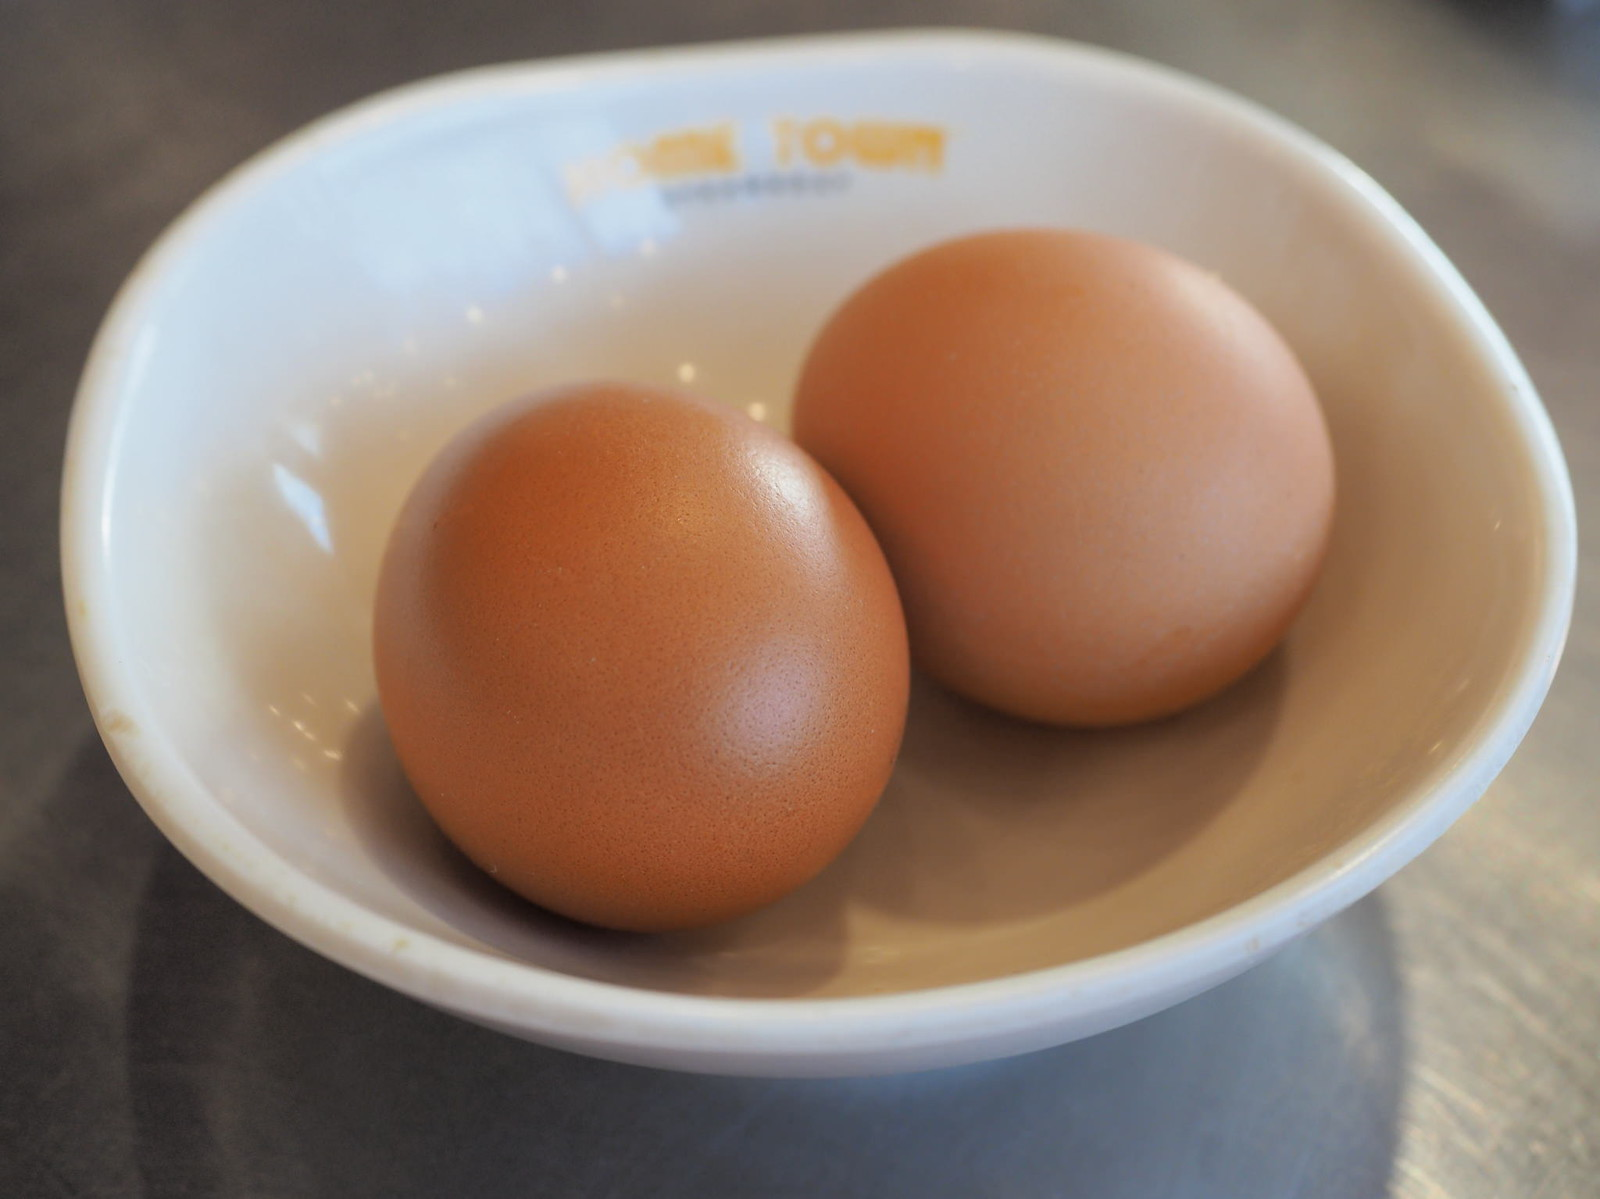 Two chicken eggs for the Classic Seafood Set